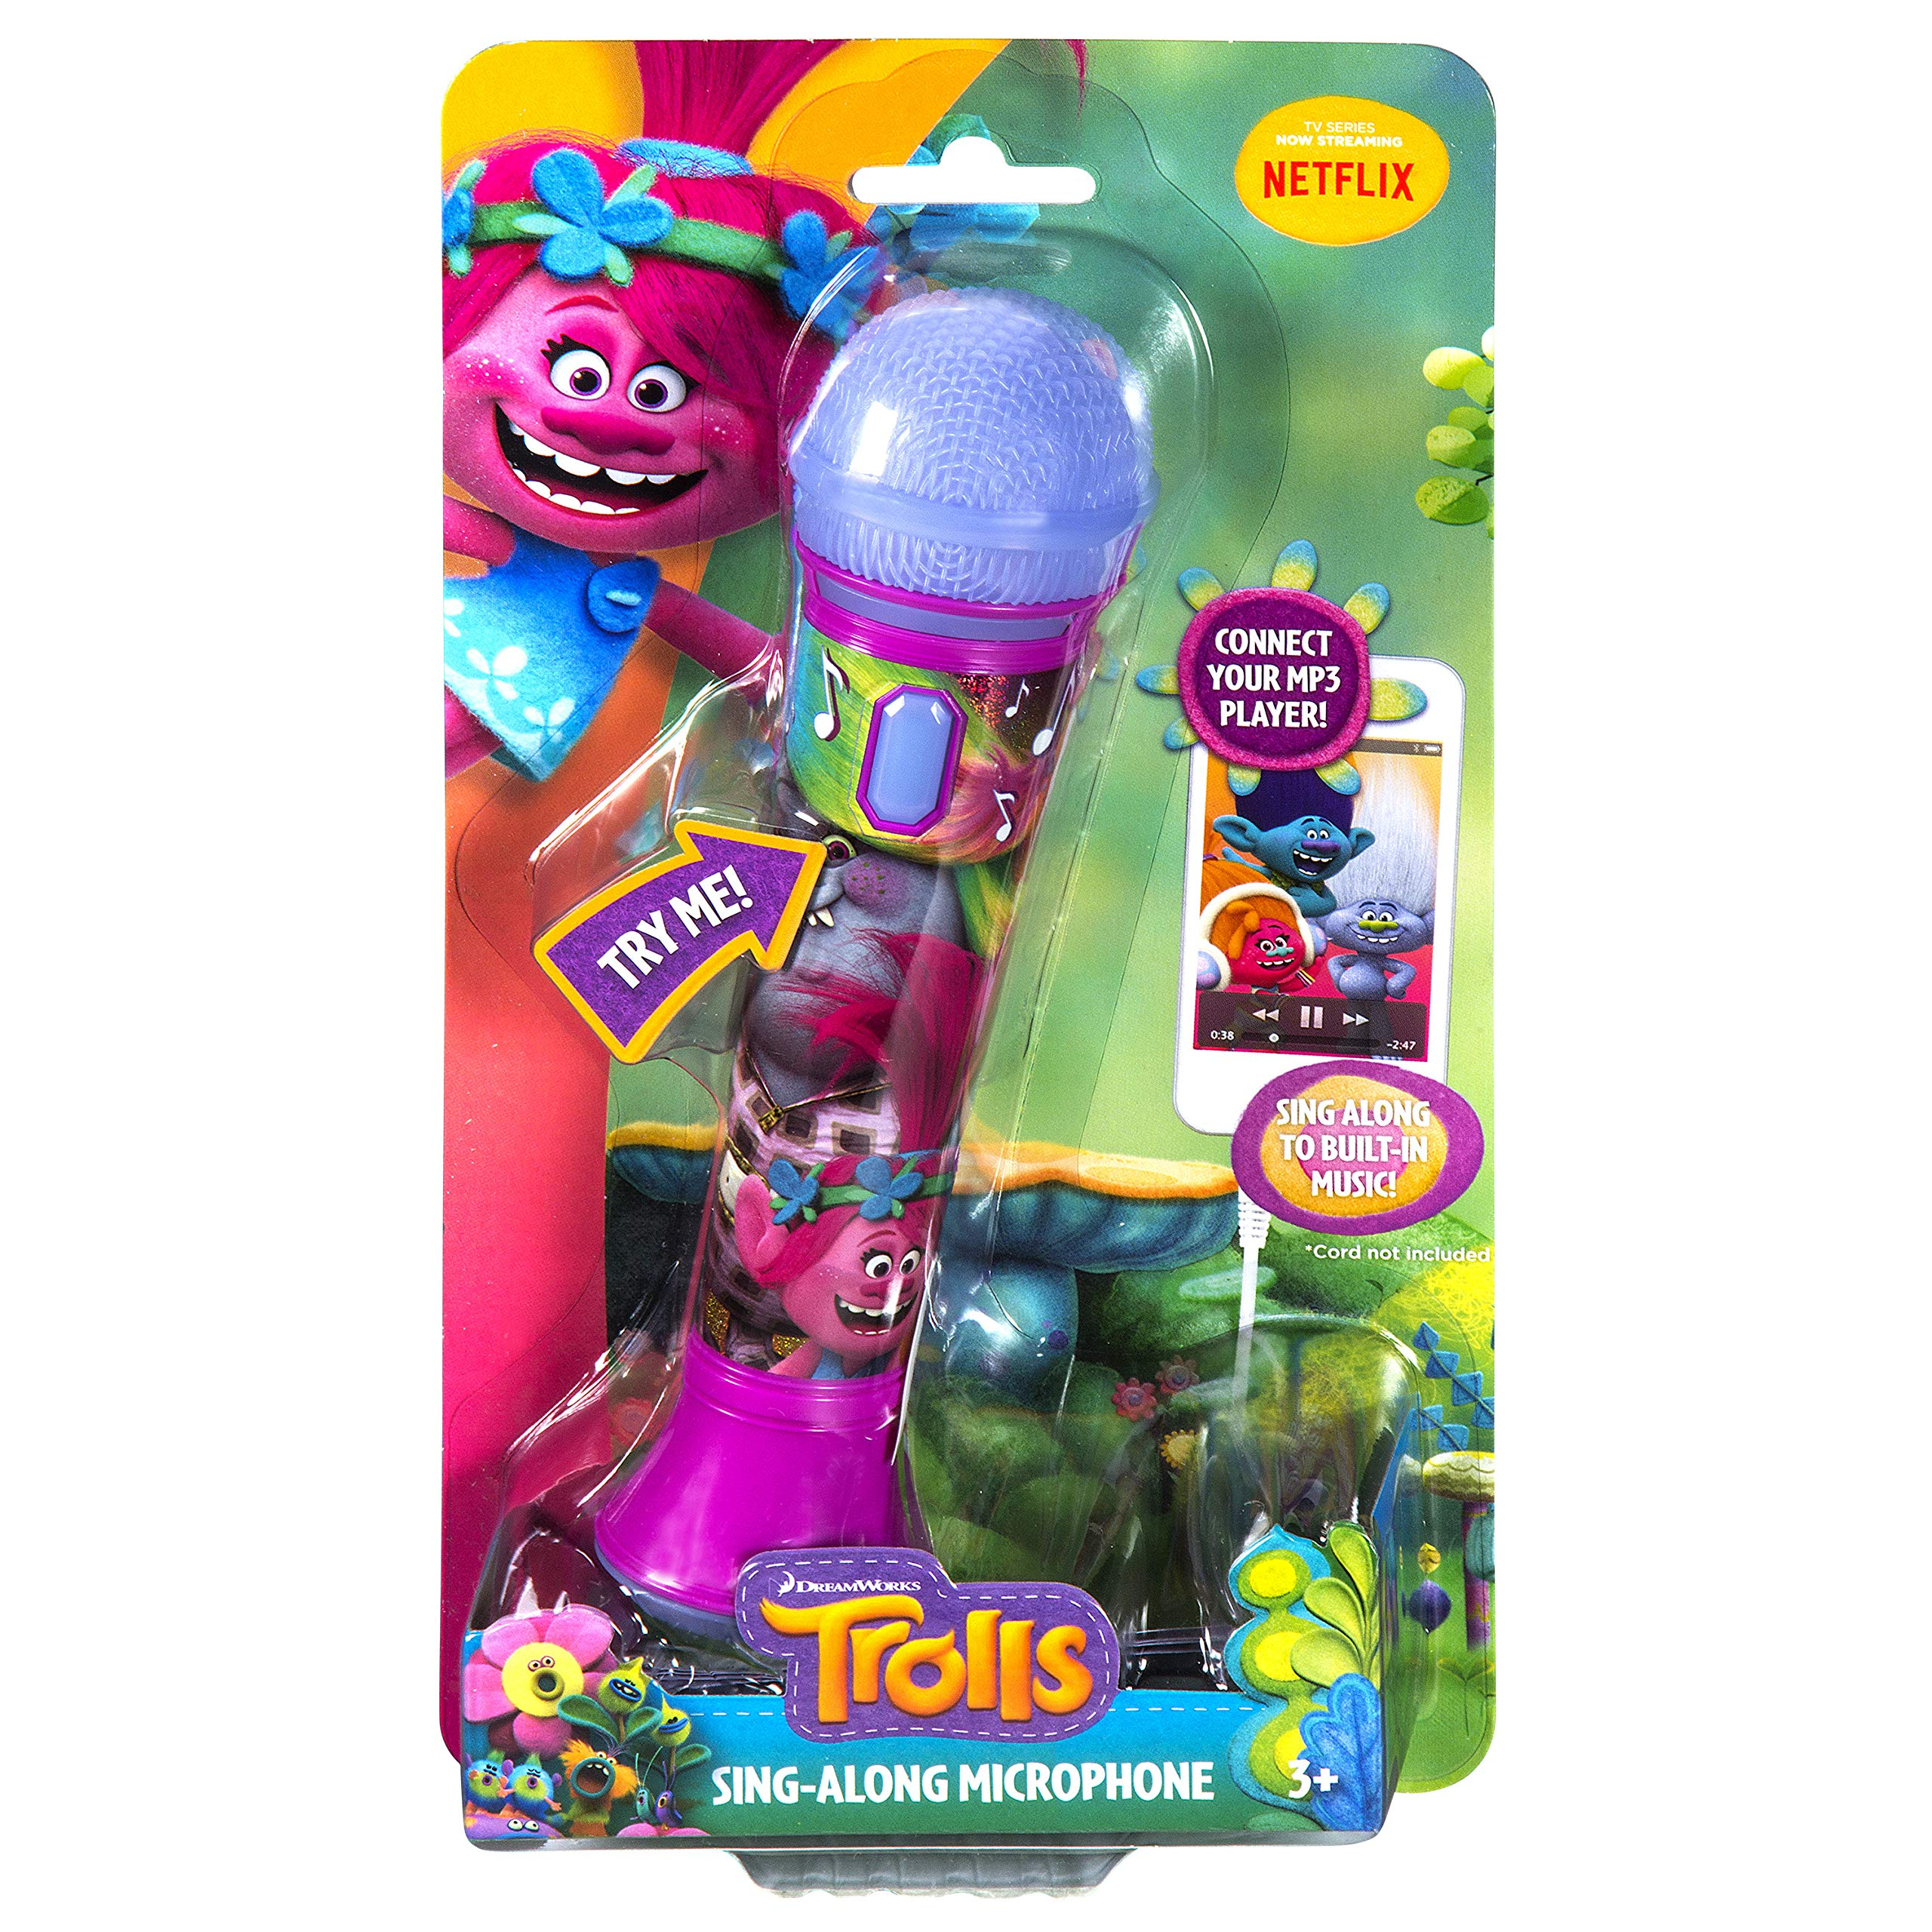 Trolls Sing Along MP3 Microphone Sing to Built in Music or Connect Your Audio Device and Sing to Whatever You Like by eKids (Image #5)